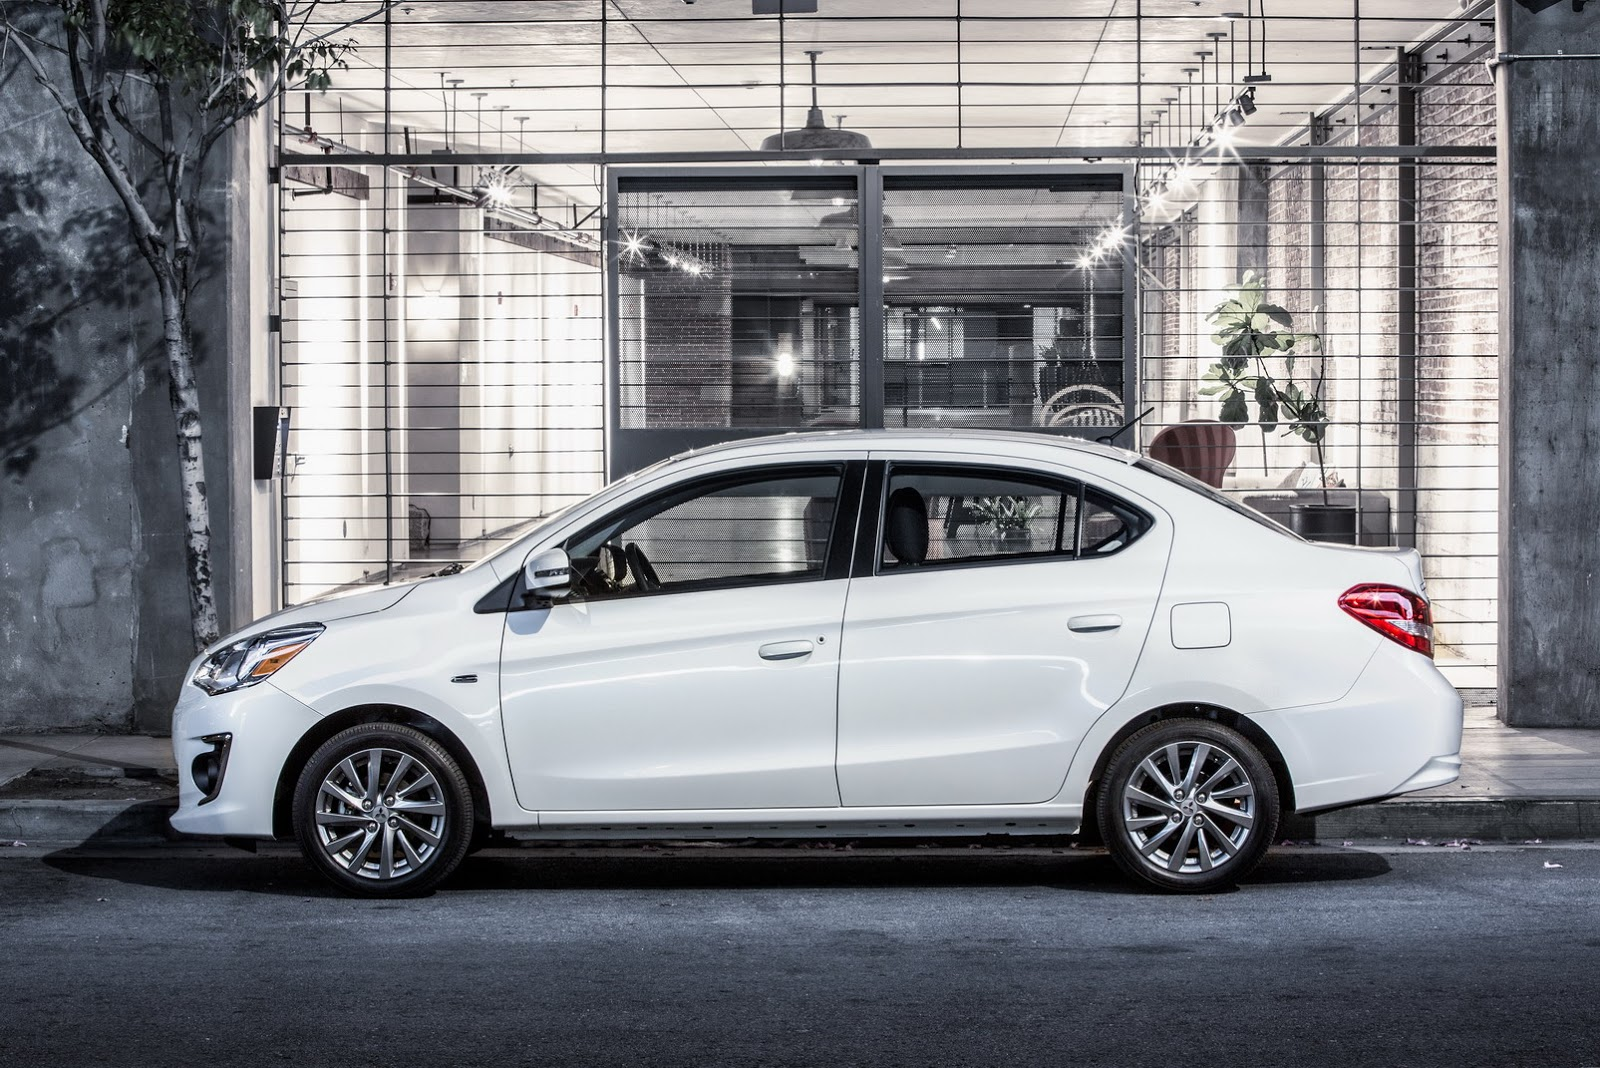 2017 Mitsubishi Mirage G4 Subcompact Sedan Launched in New York ...